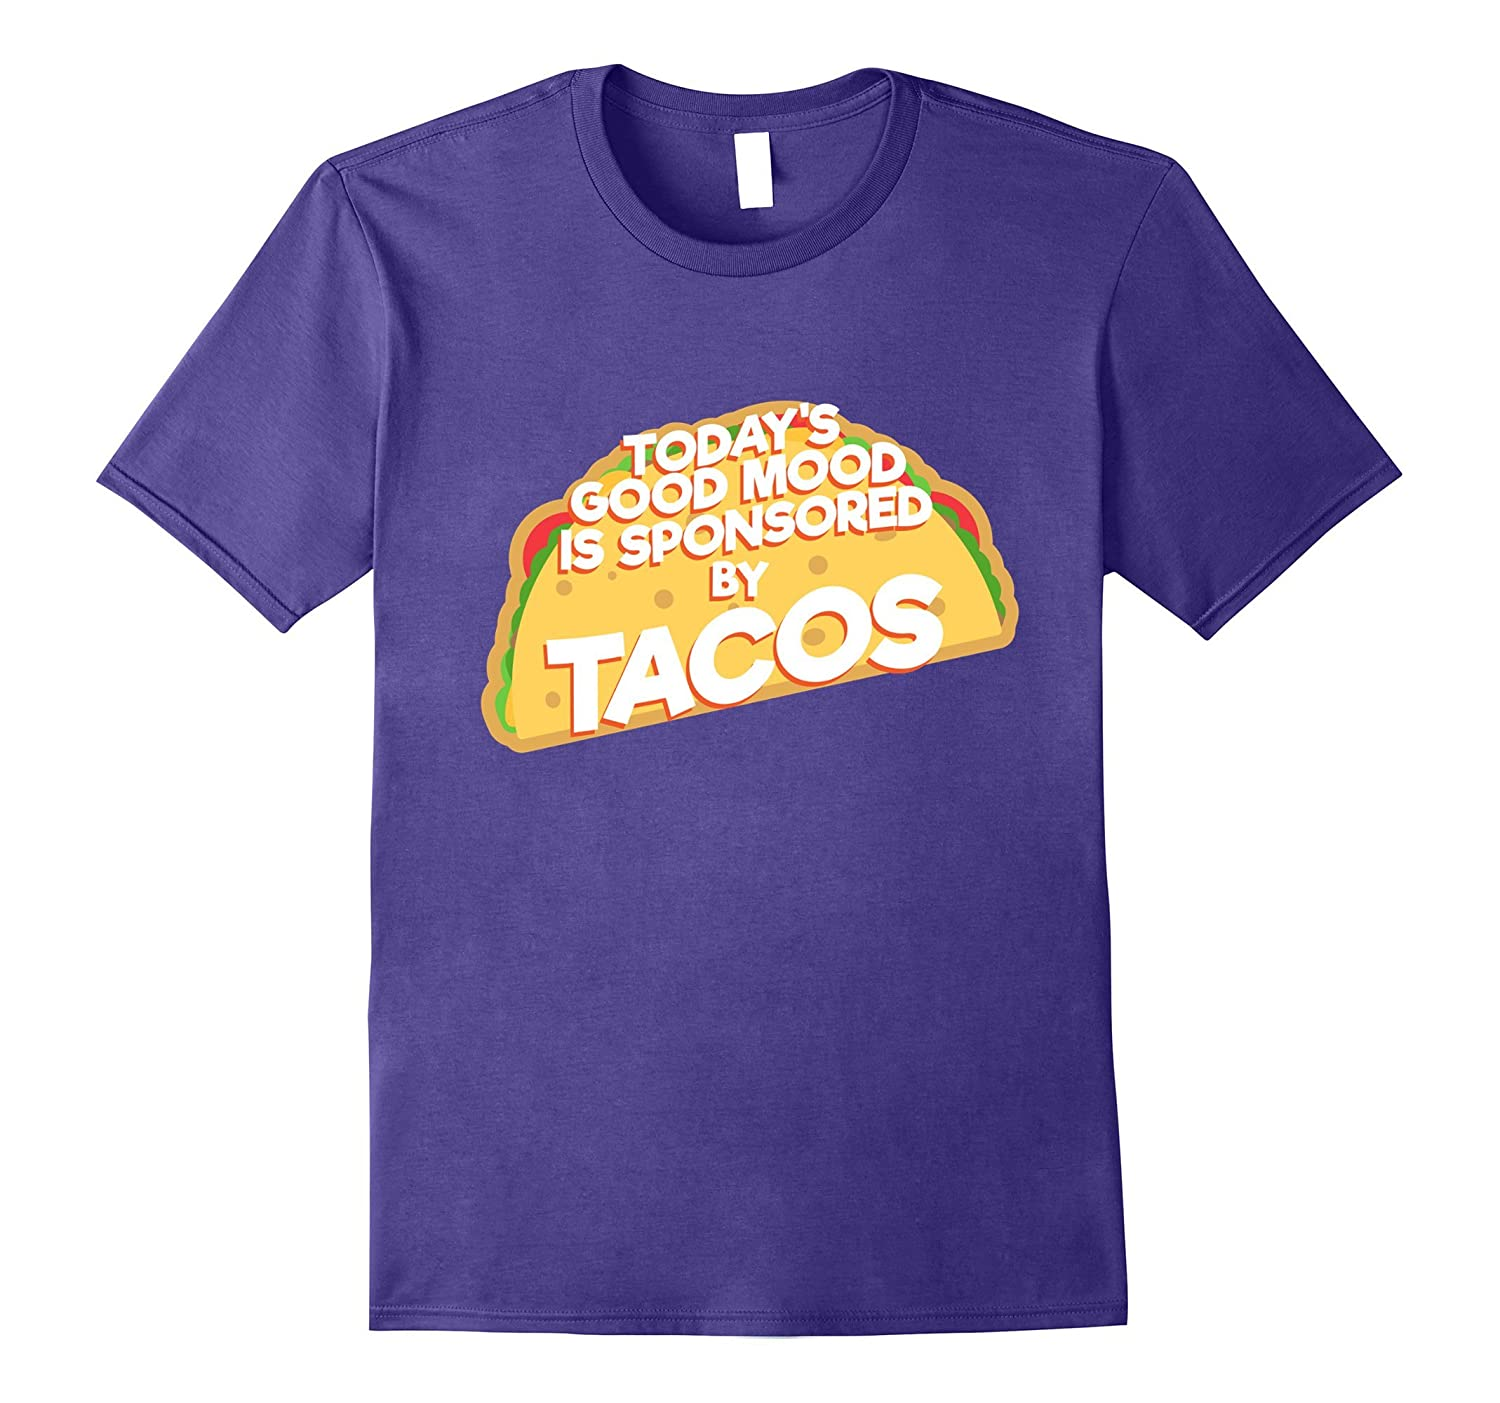 Today's Good Mood Is Sponsored By Tacos T Shirt Tee-Art